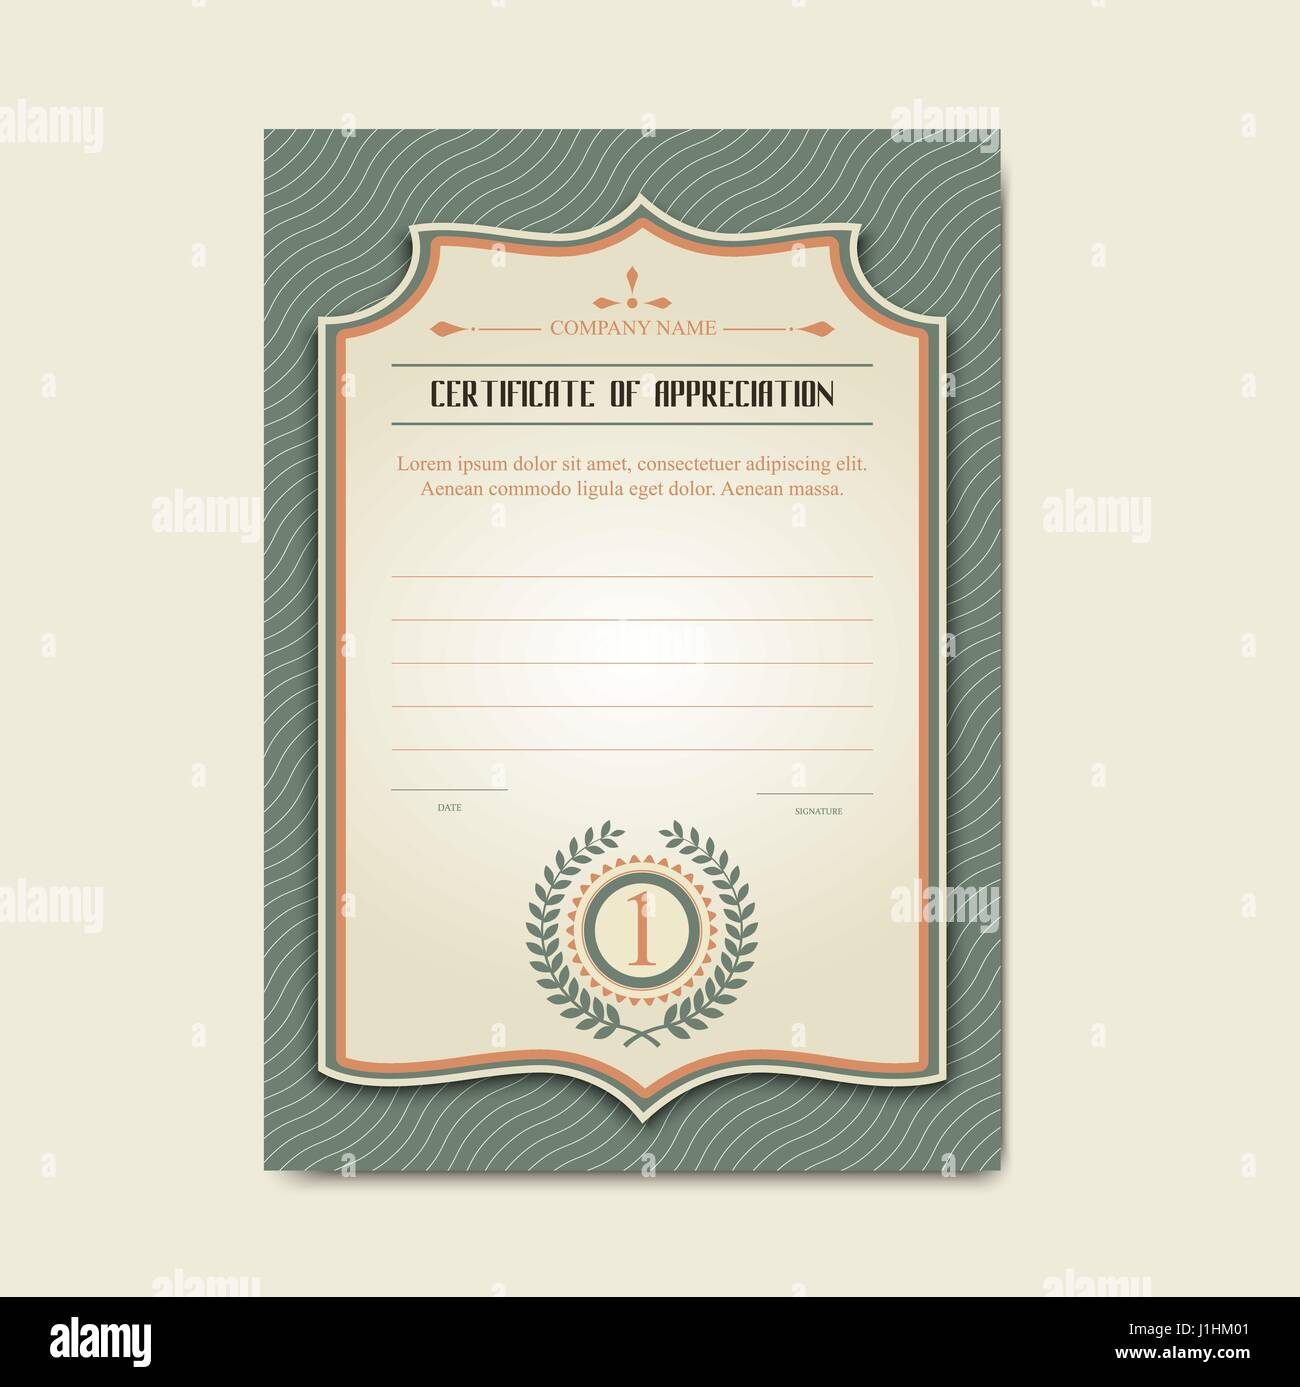 Vector Certificate Template Stock Vector Art Illustration Vector